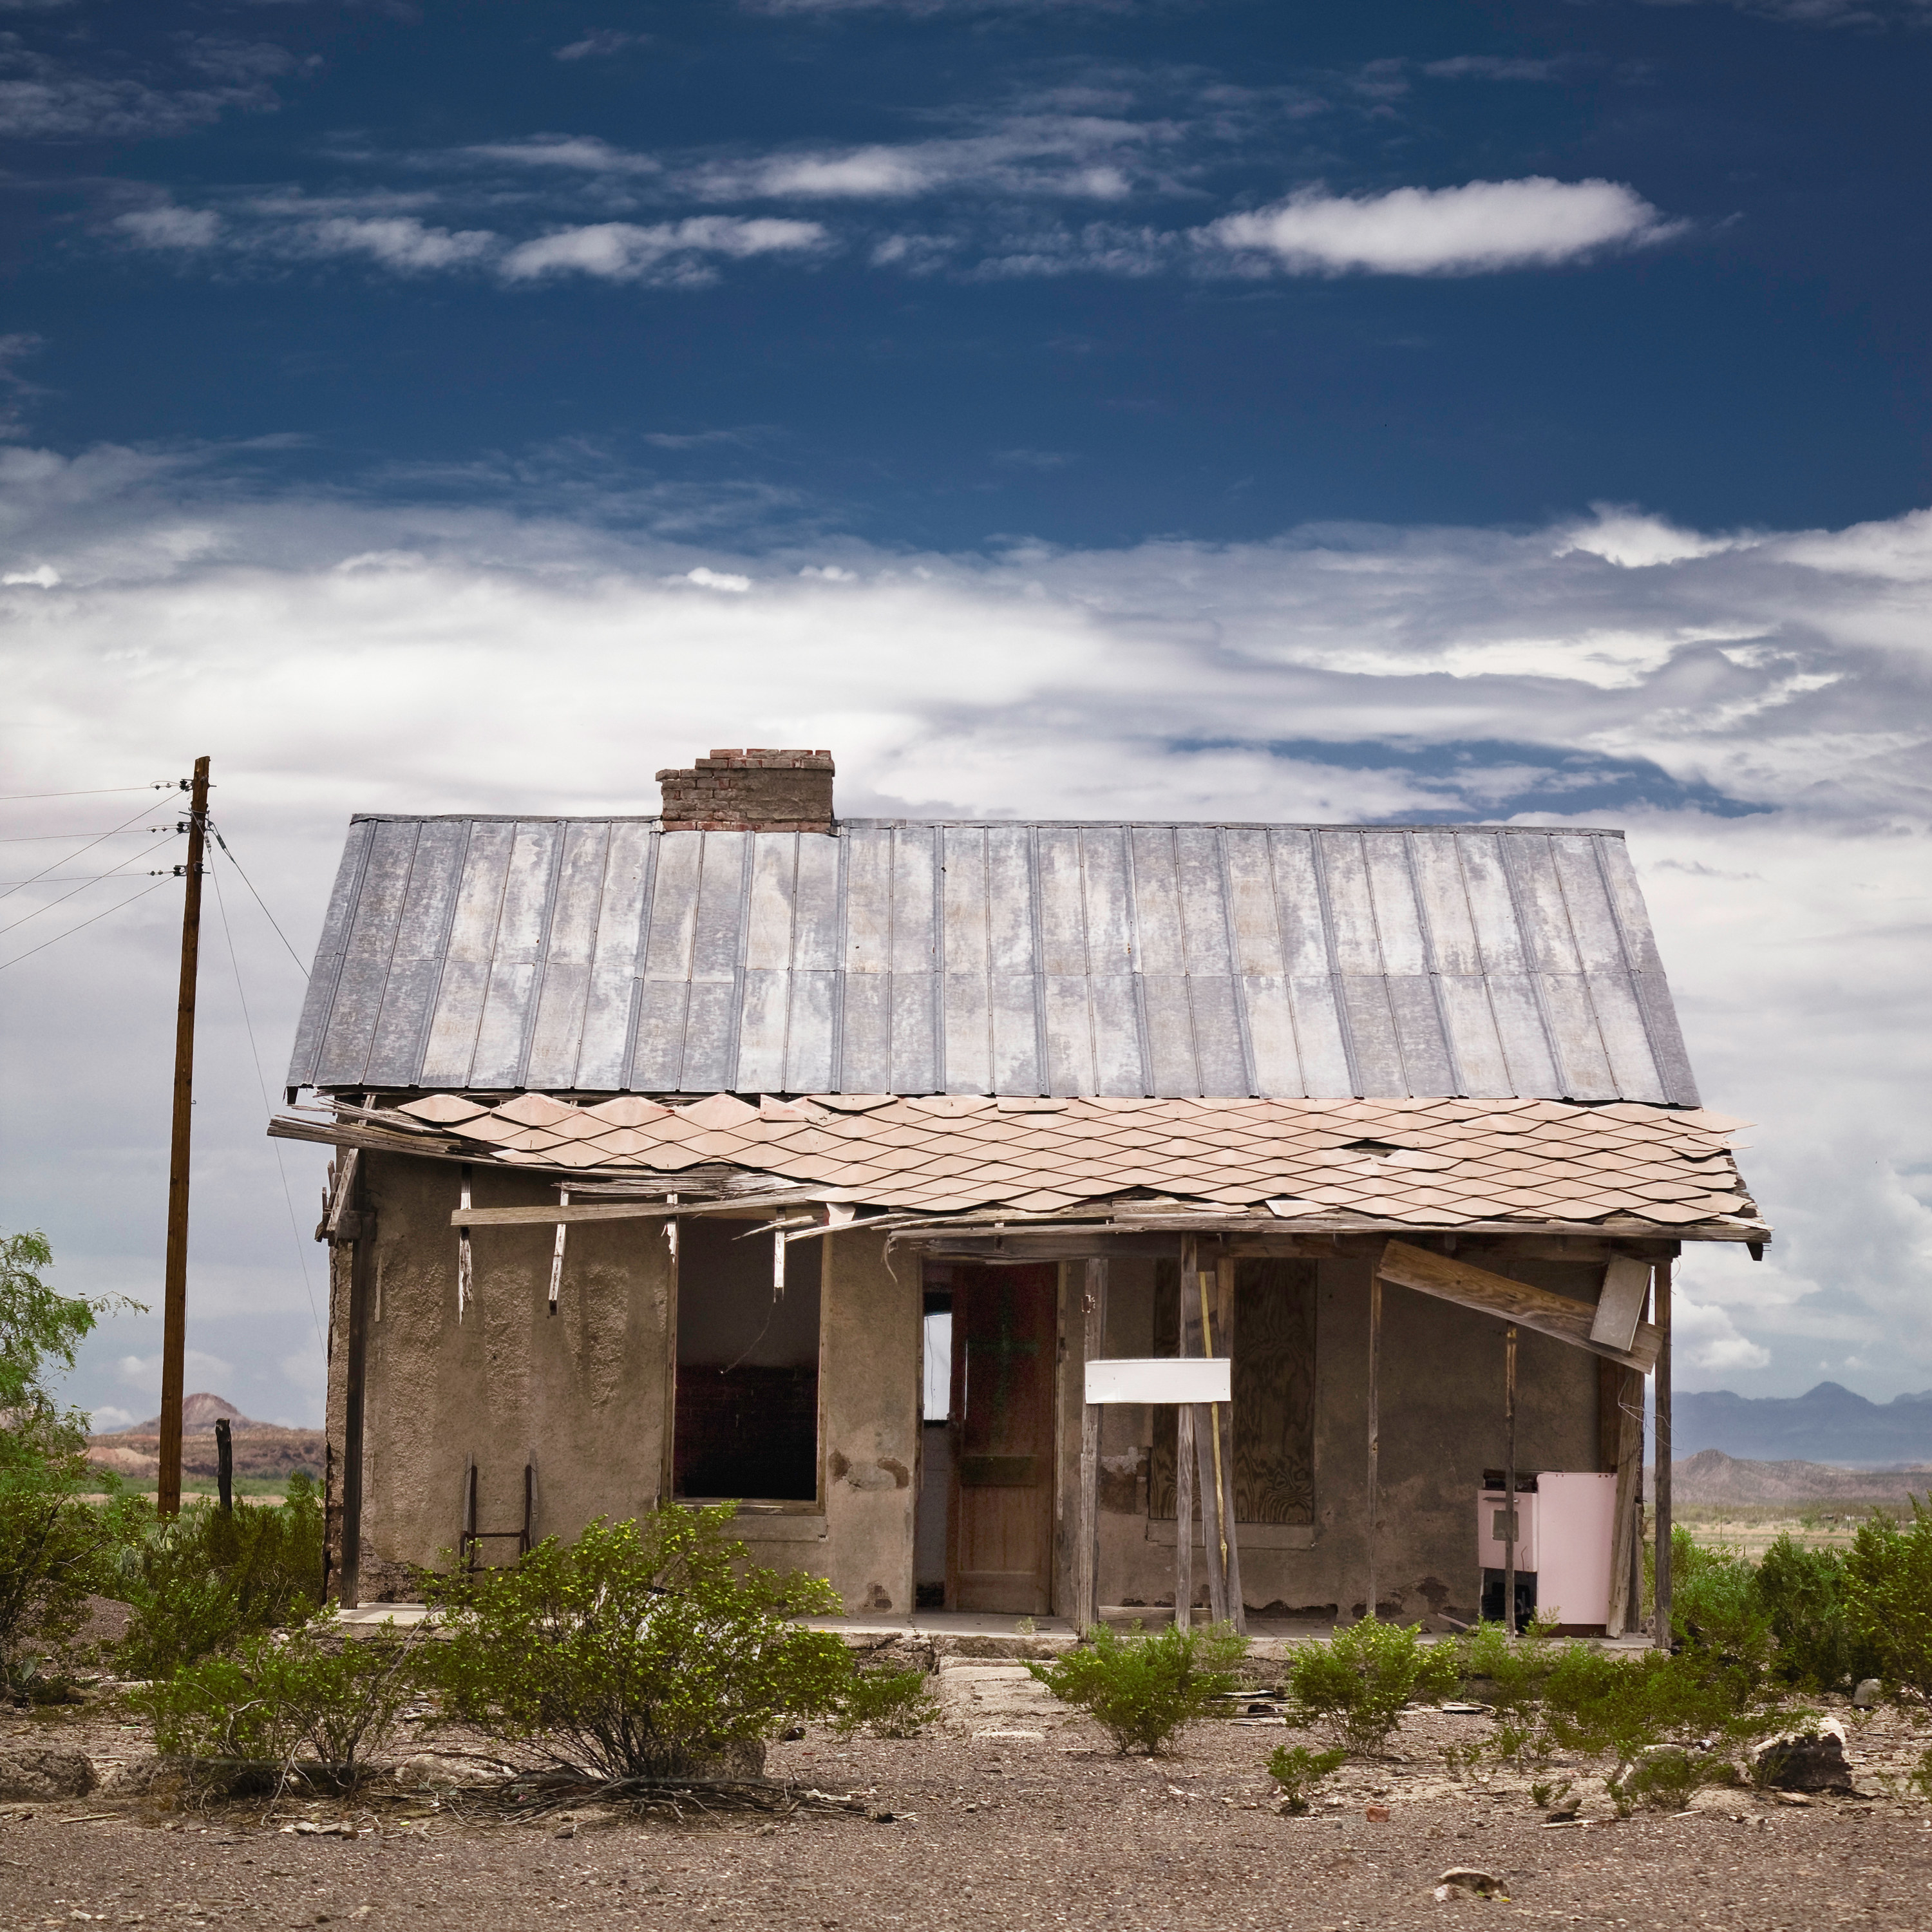 An abandoned old building in Terlingua